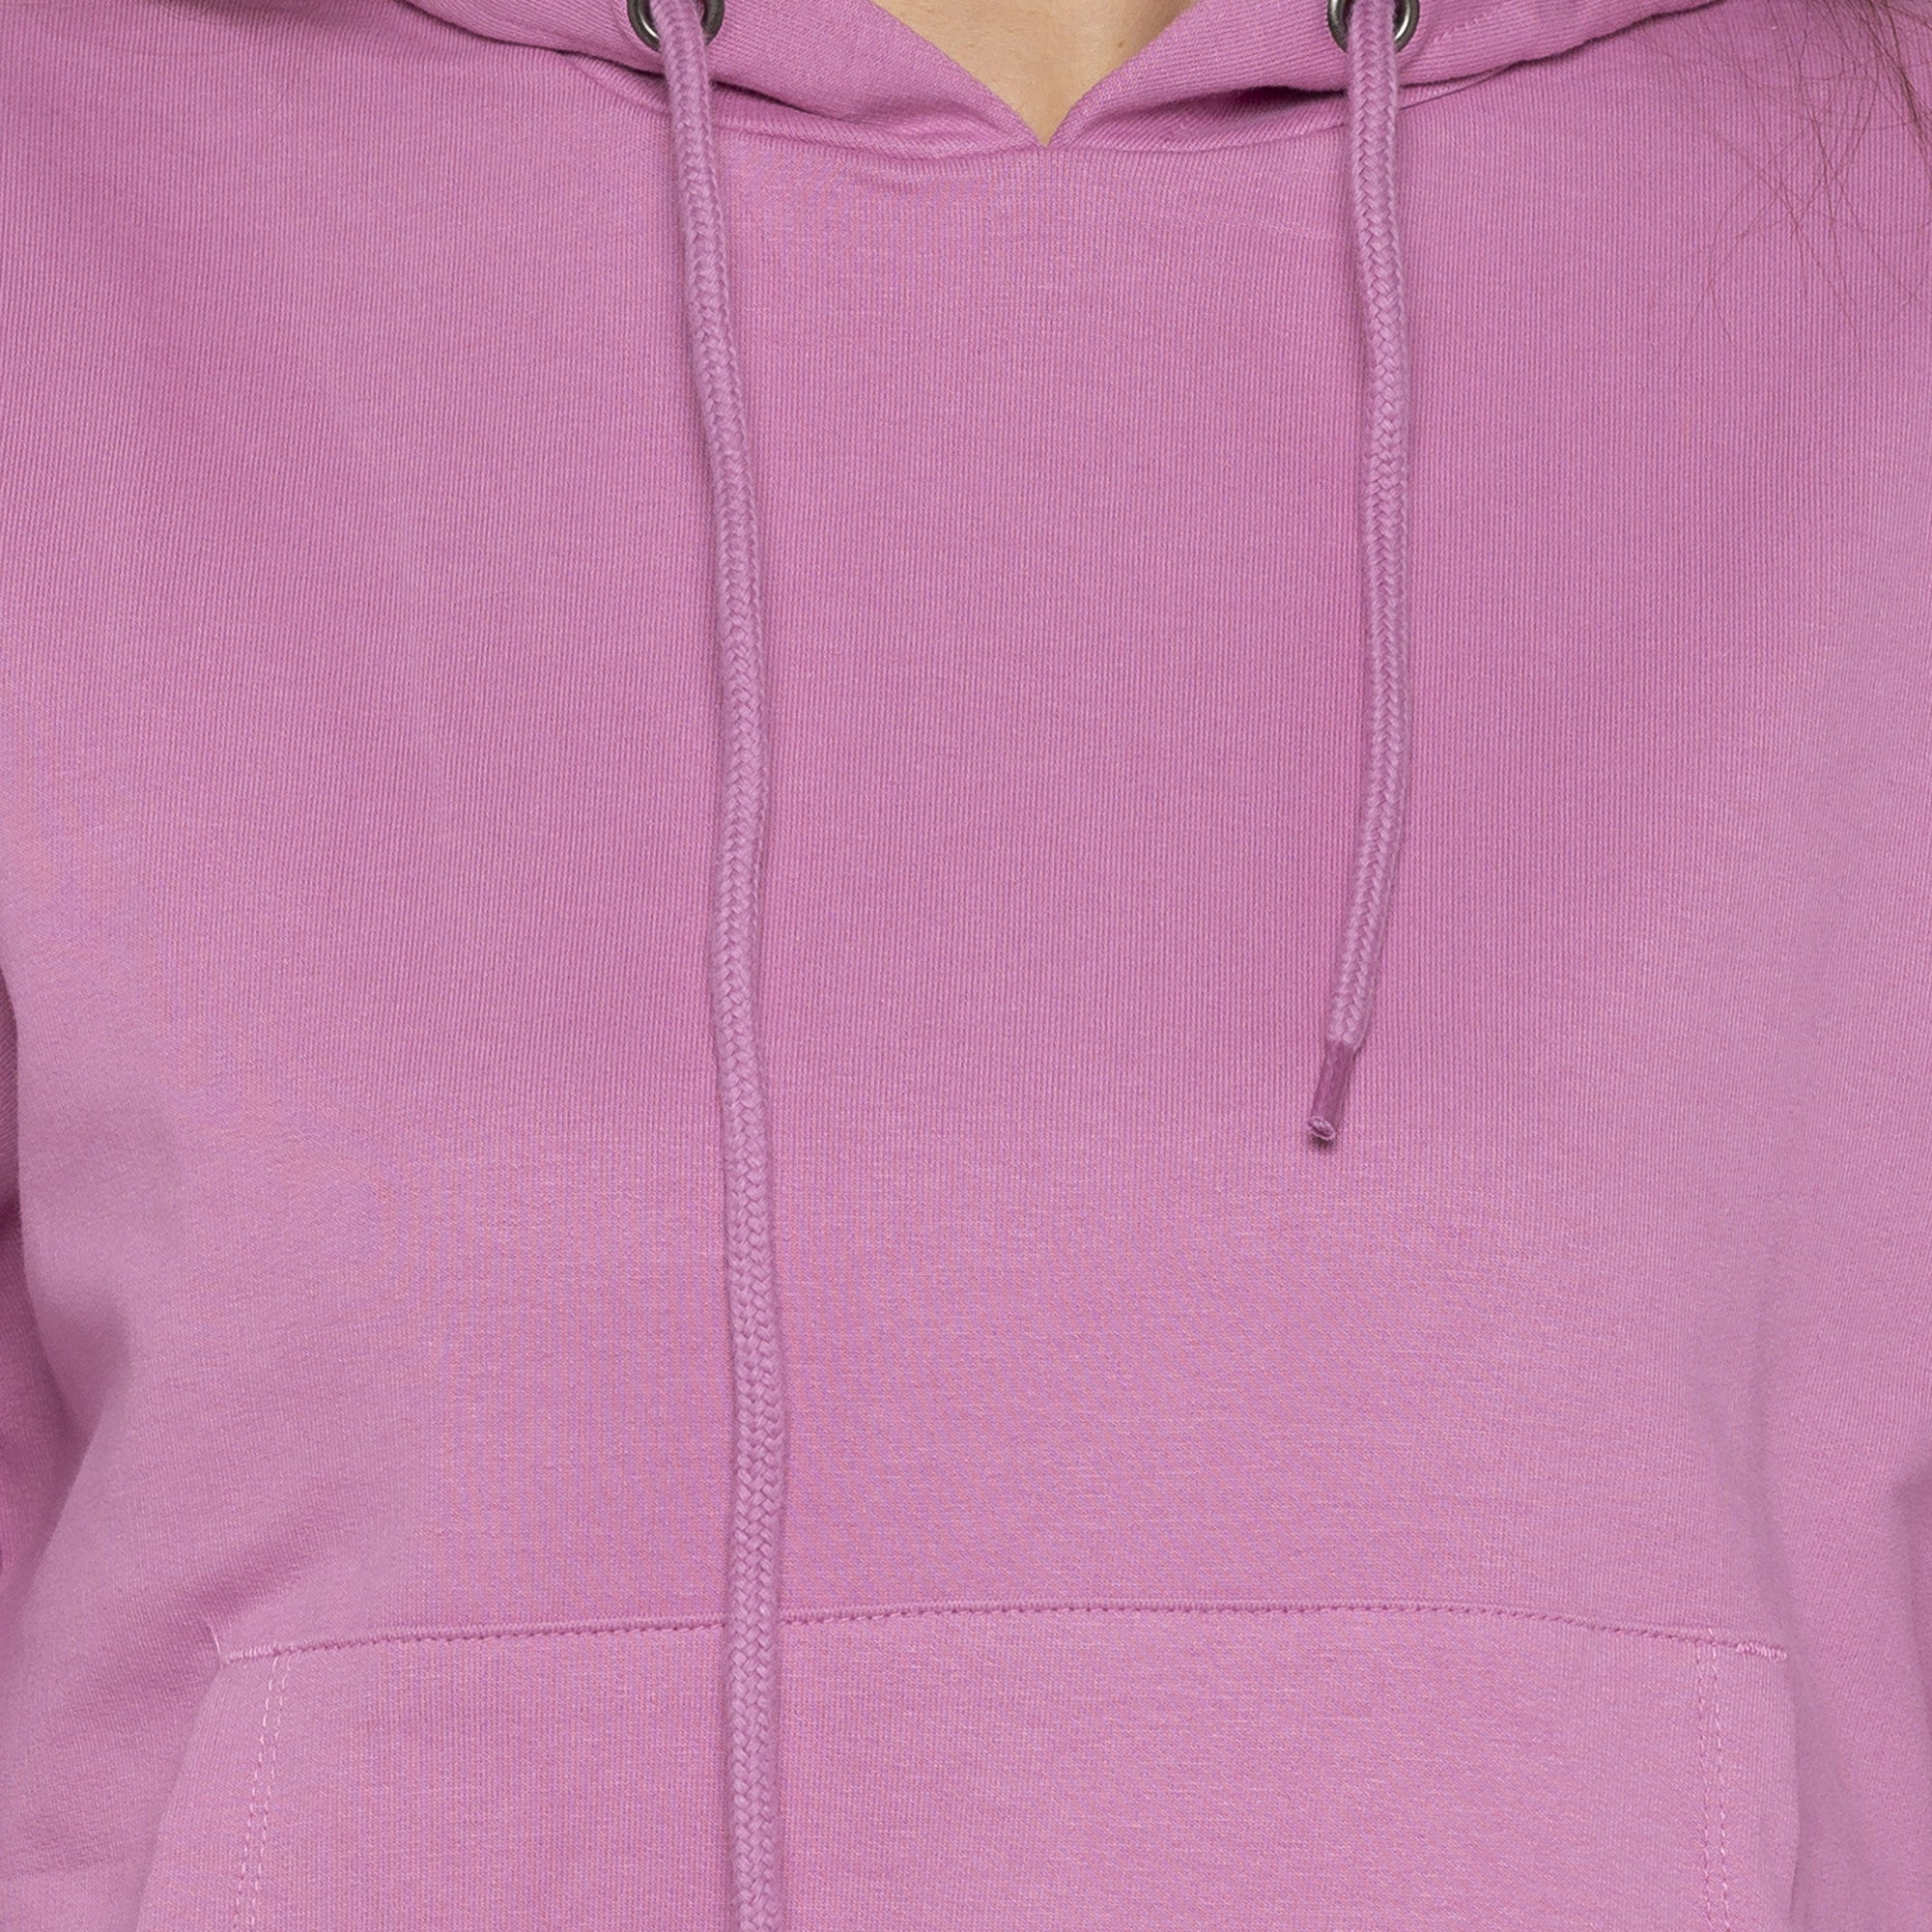 Casual Pink Color Solid Hooded Sweatshirt-5